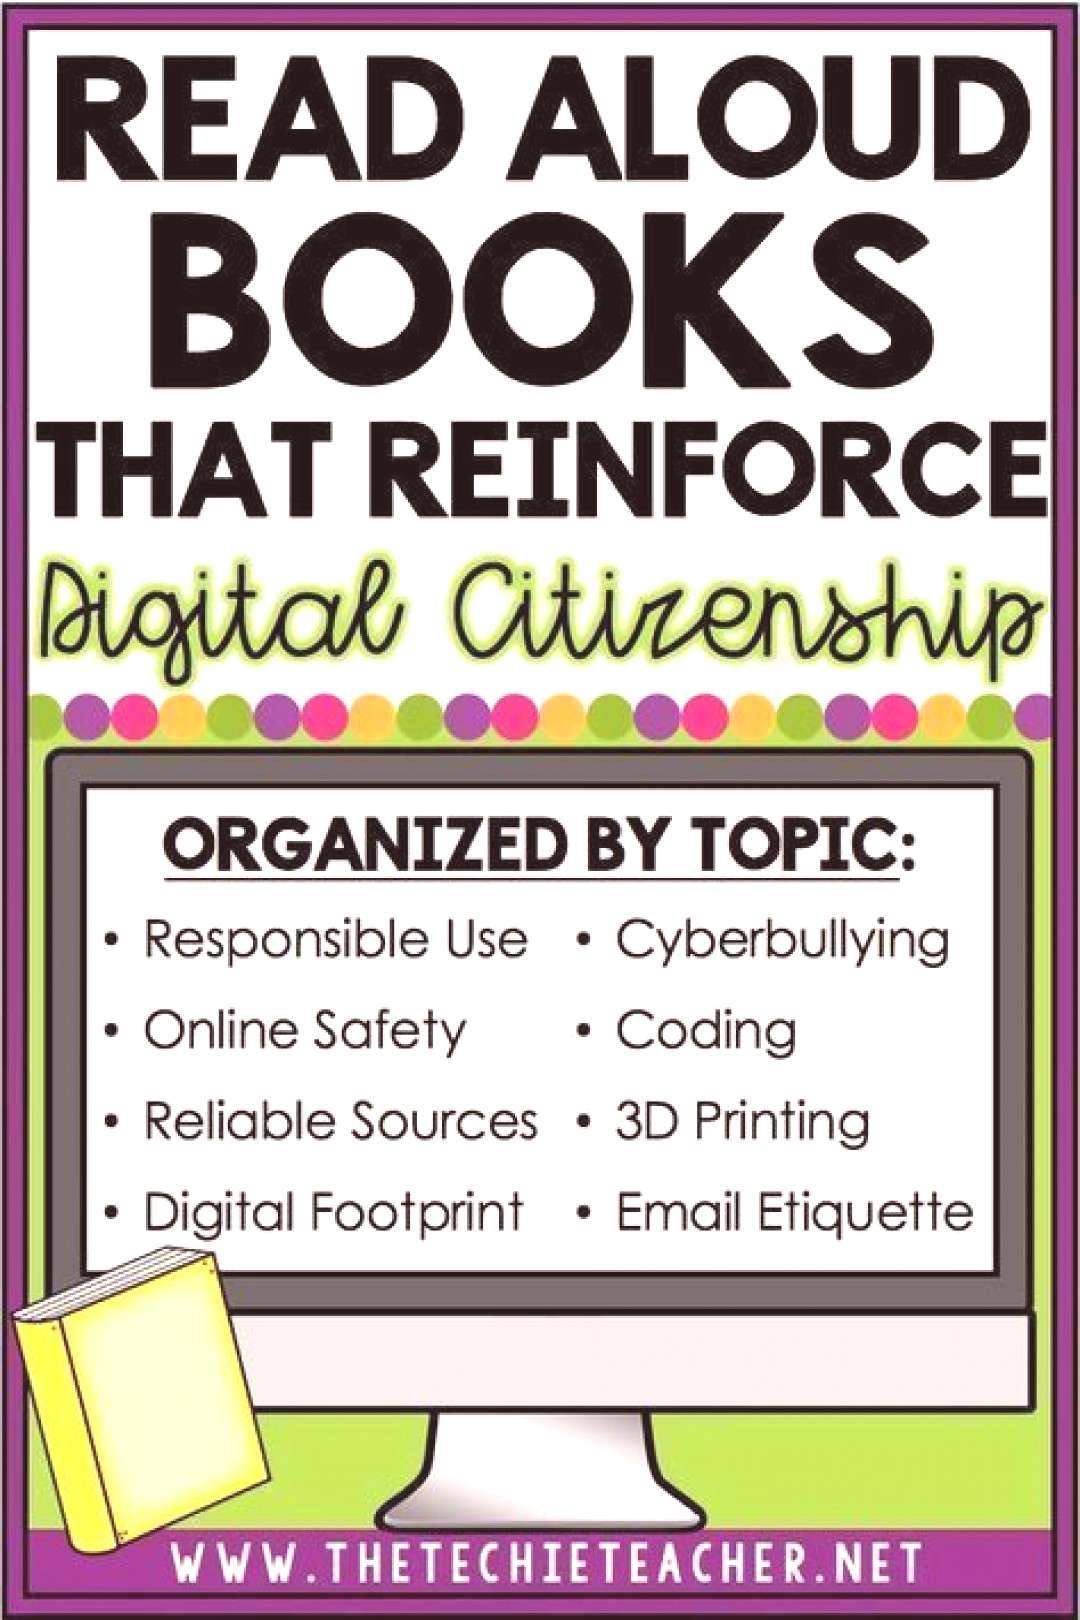 Check out this list of picture books that will help reinforce digital citizenship! These read aloud